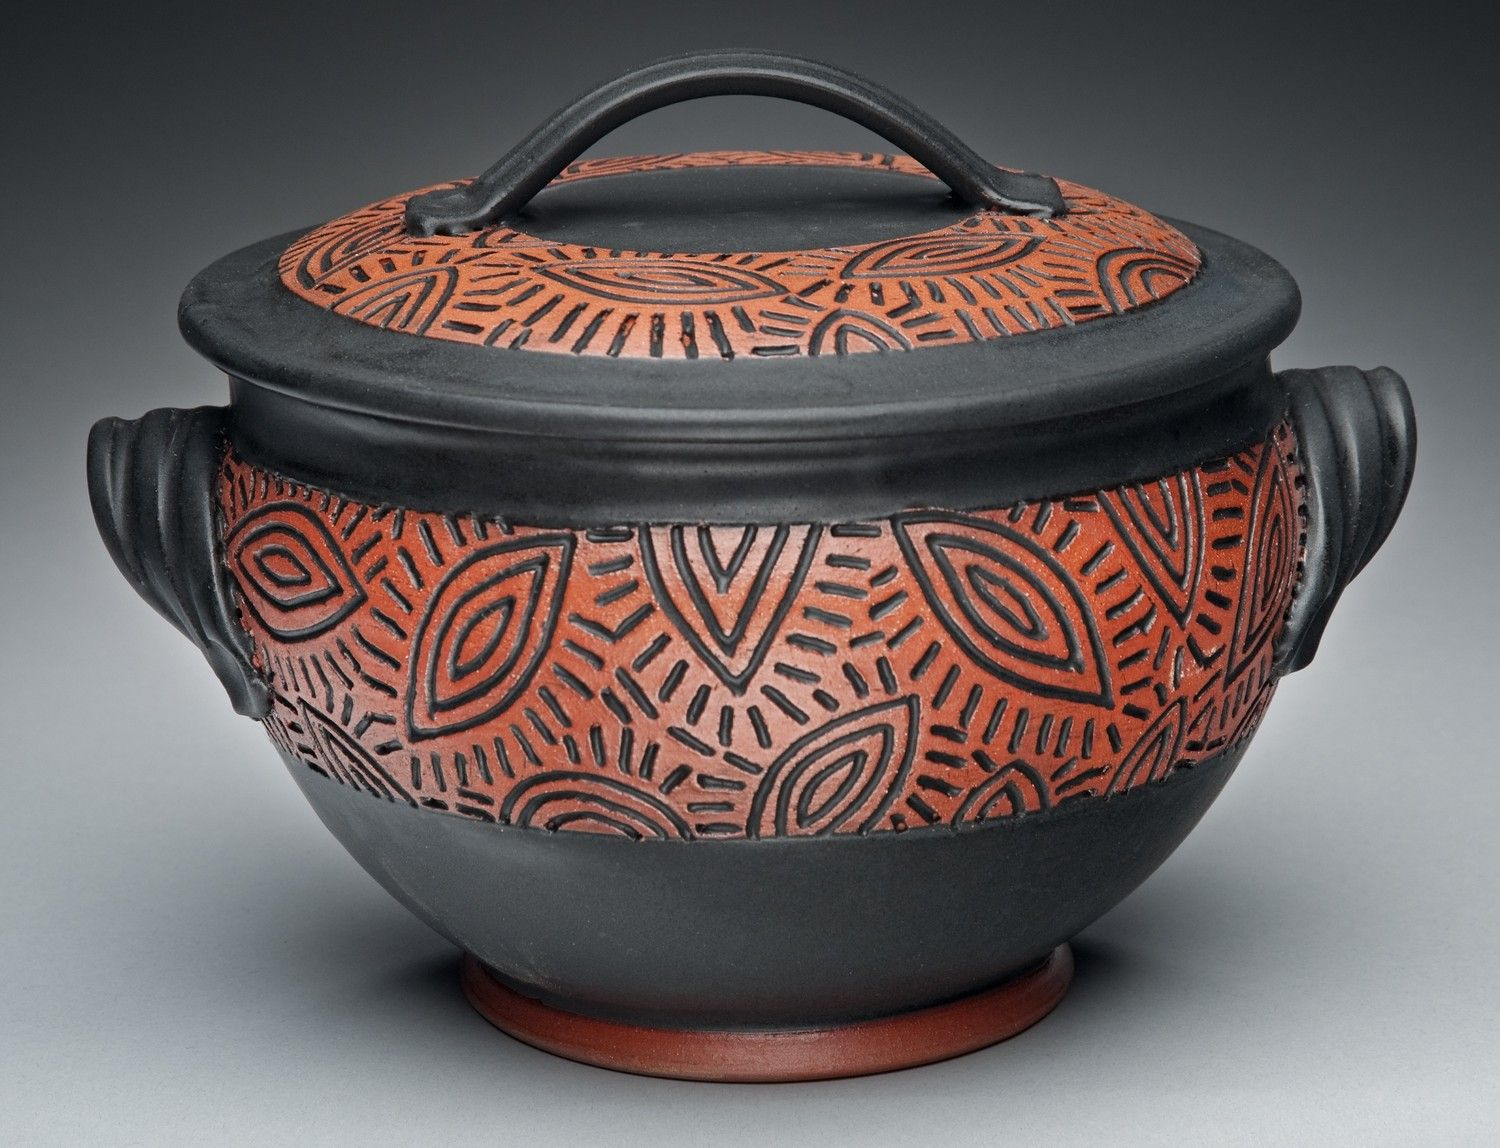 Soup Tureen - Red Earthenware with Black Glaze. $85.00, via Etsy.